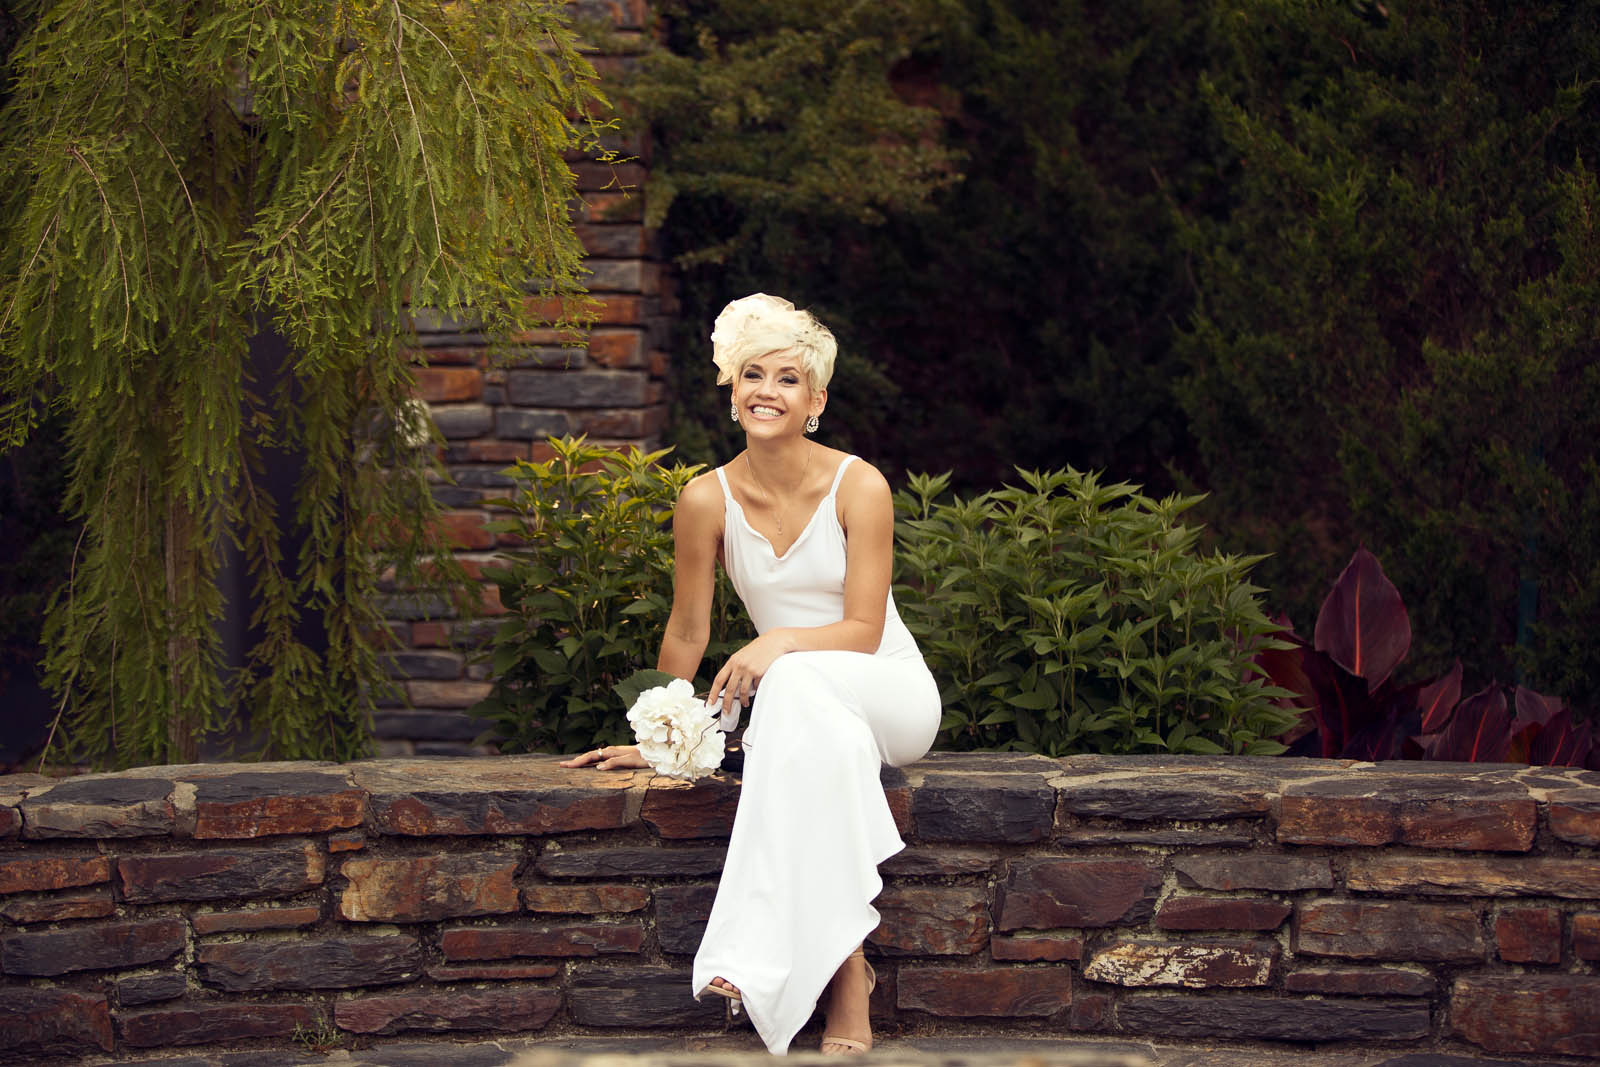 Bridal_Portraits_DukeGardens_2014_ErnestoSue-0322-Edit.jpg